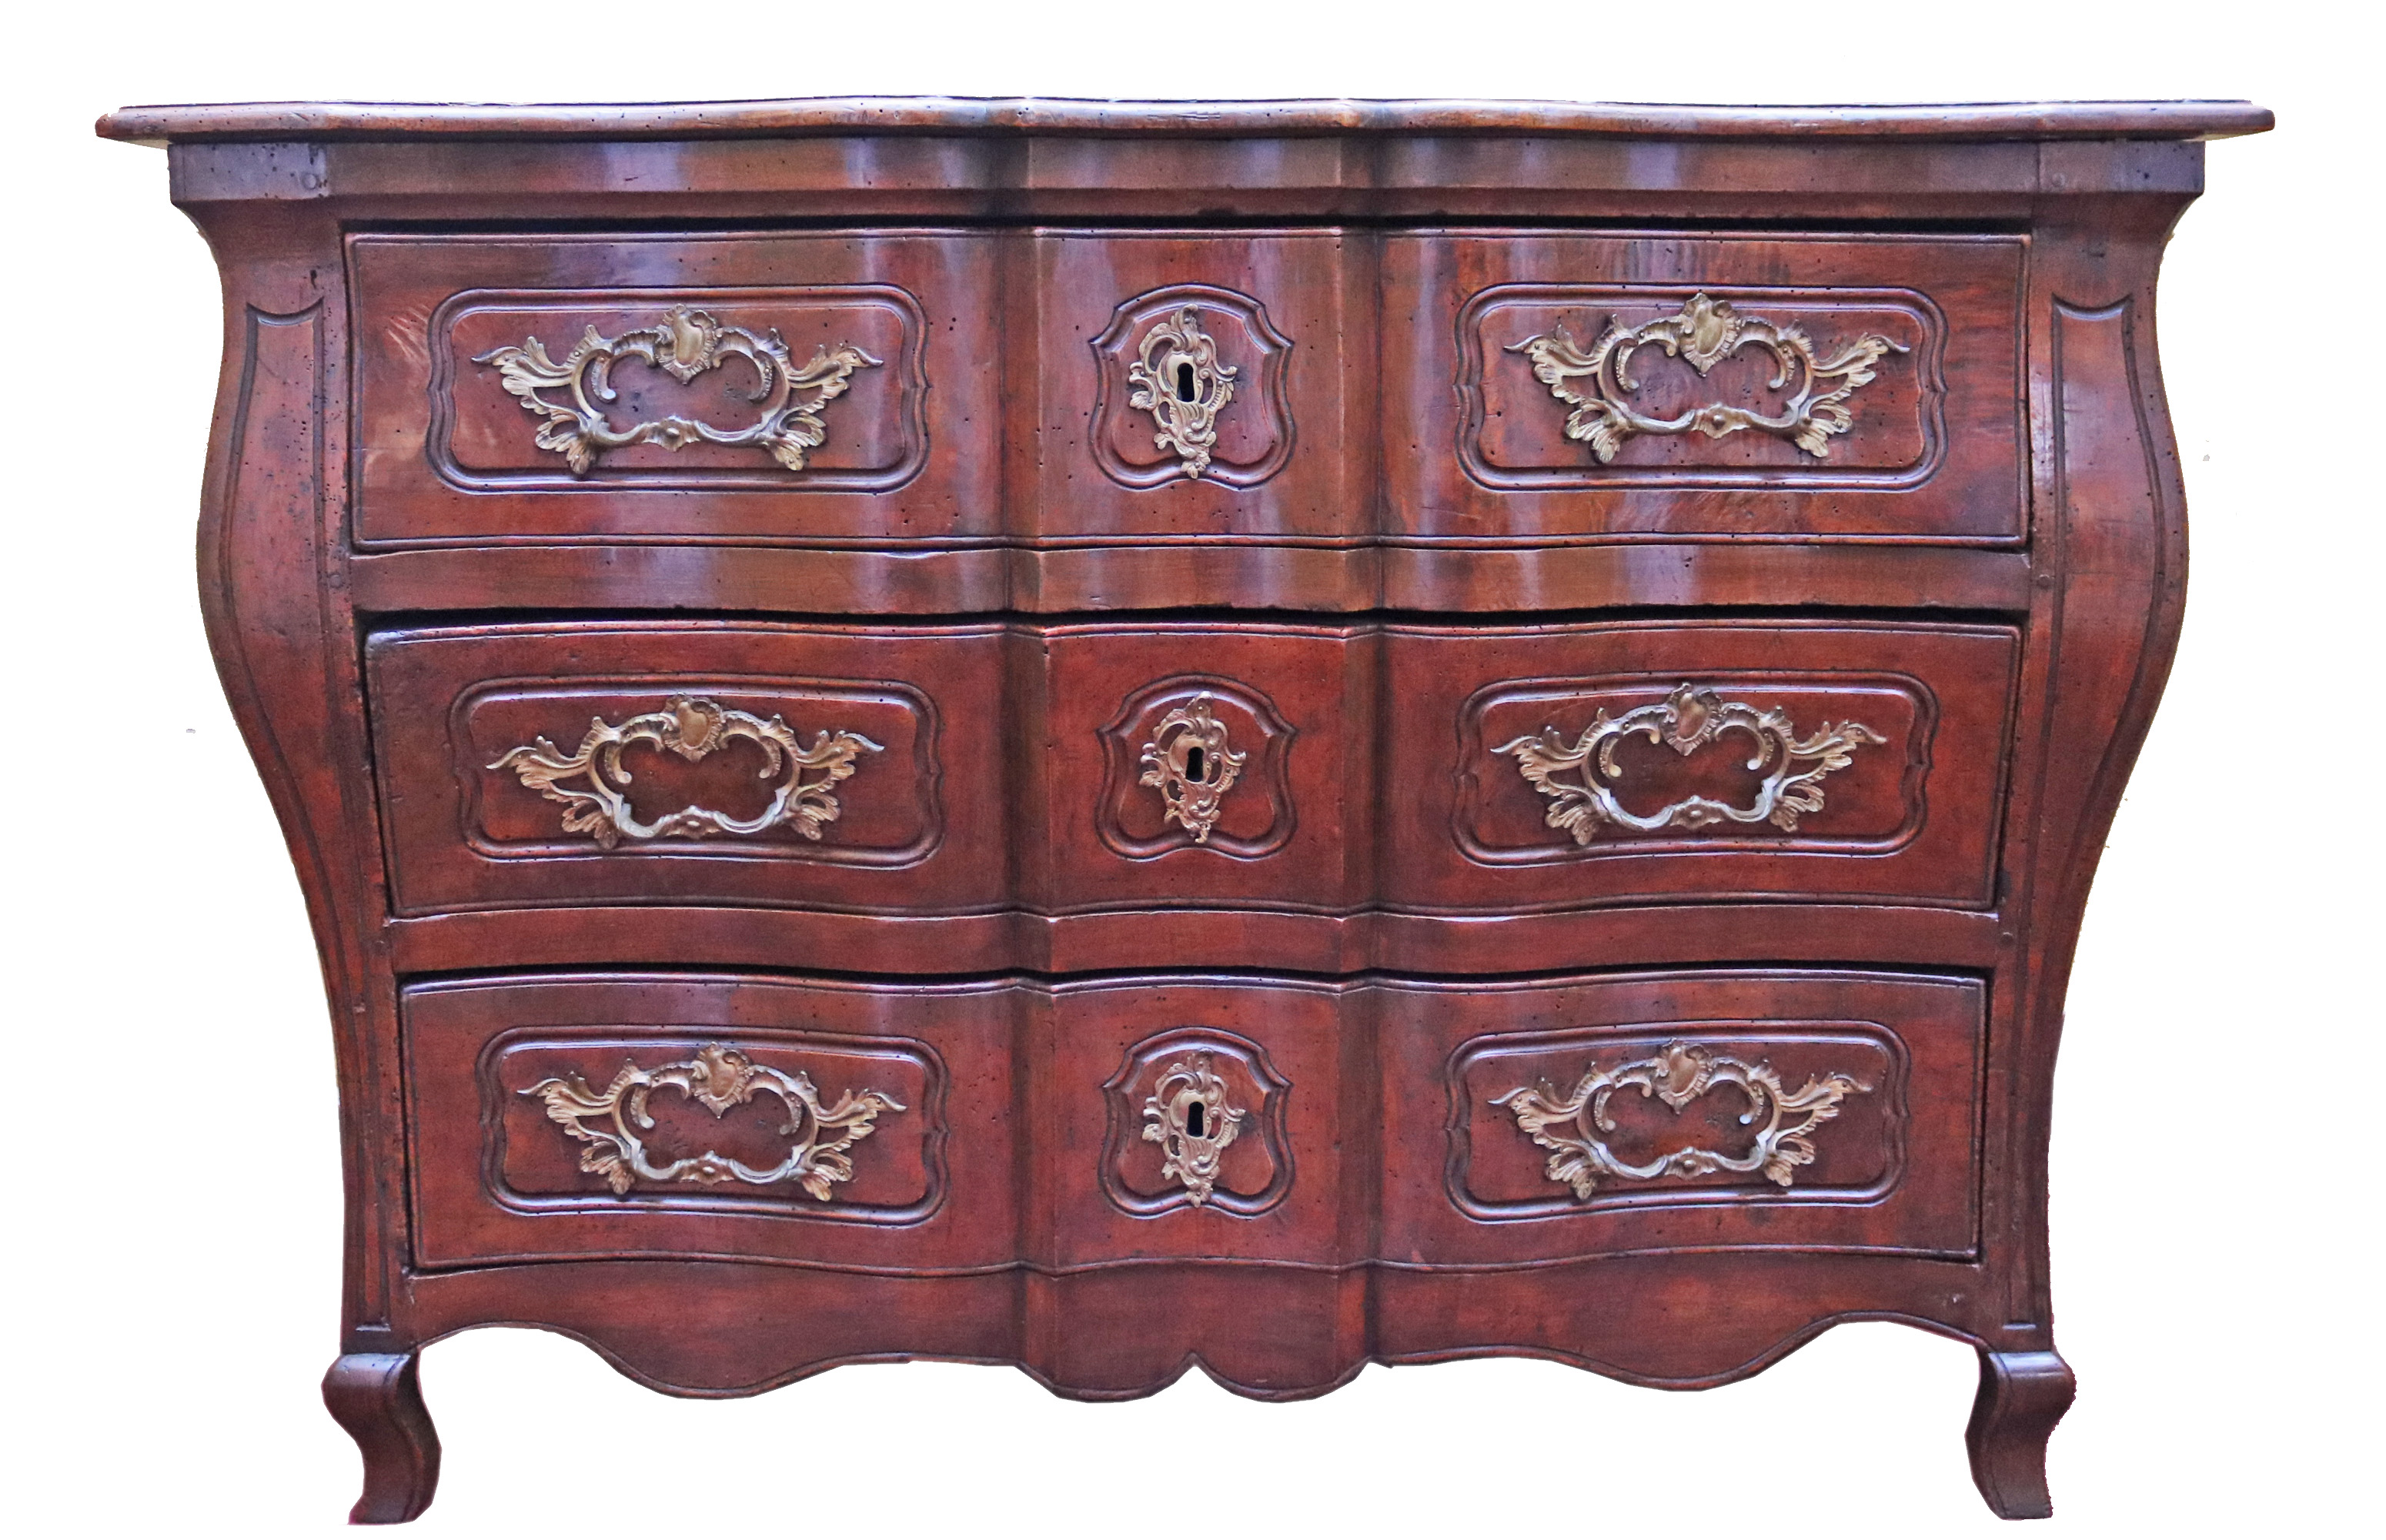 An Elegant 18th Century French Louis XV Walnut Commode en Tombeau No. 4765